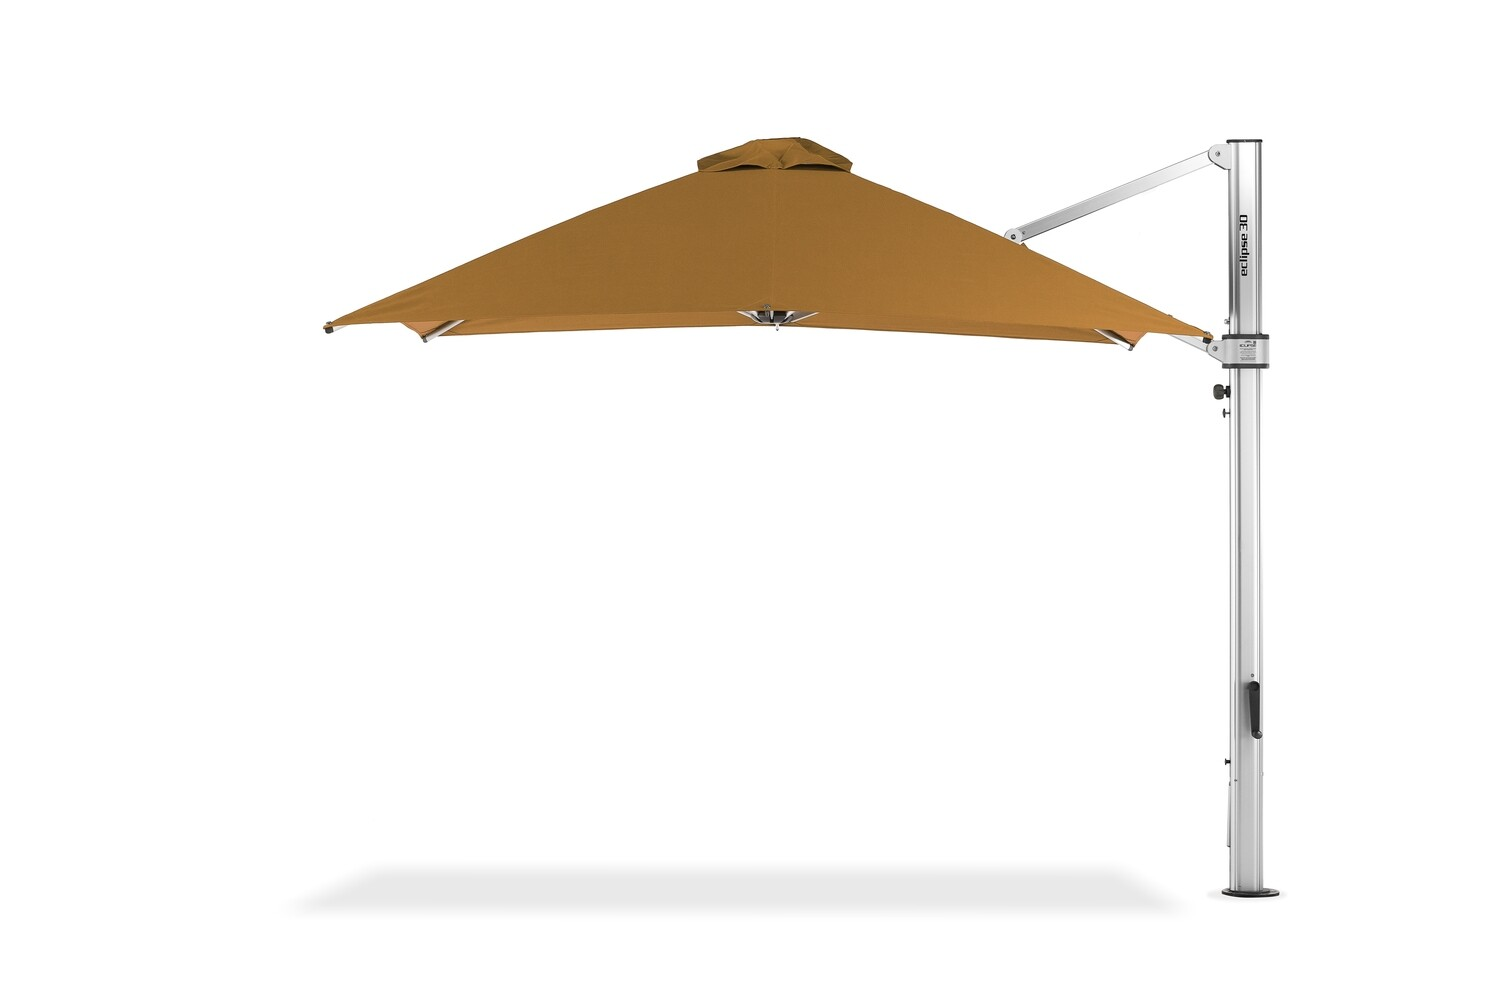 David & Shannon 10' Cantilever Umbrella Set